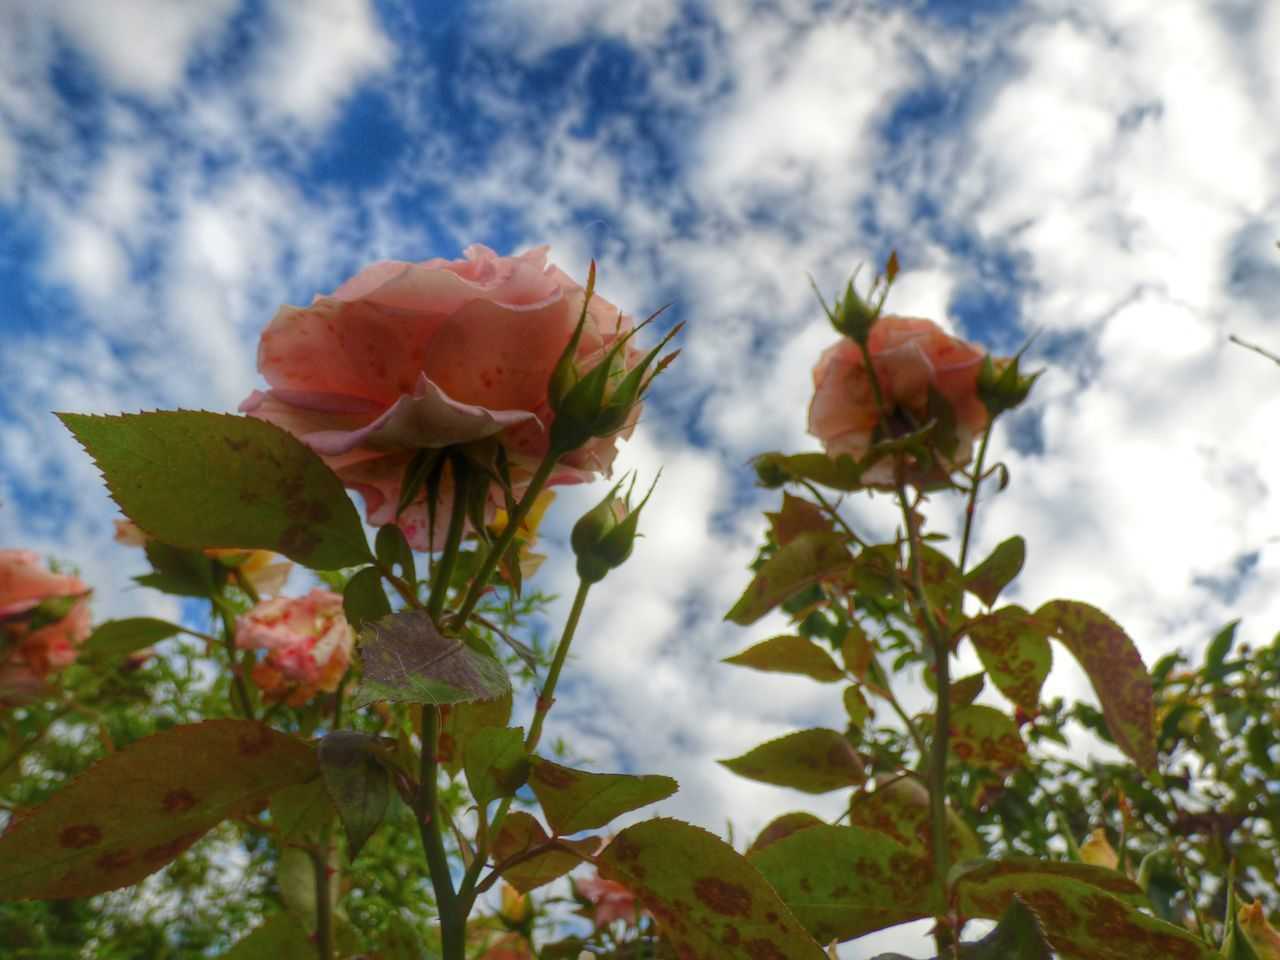 flower, growth, nature, fragility, beauty in nature, petal, freshness, plant, no people, flower head, day, outdoors, close-up, blooming, low angle view, sky